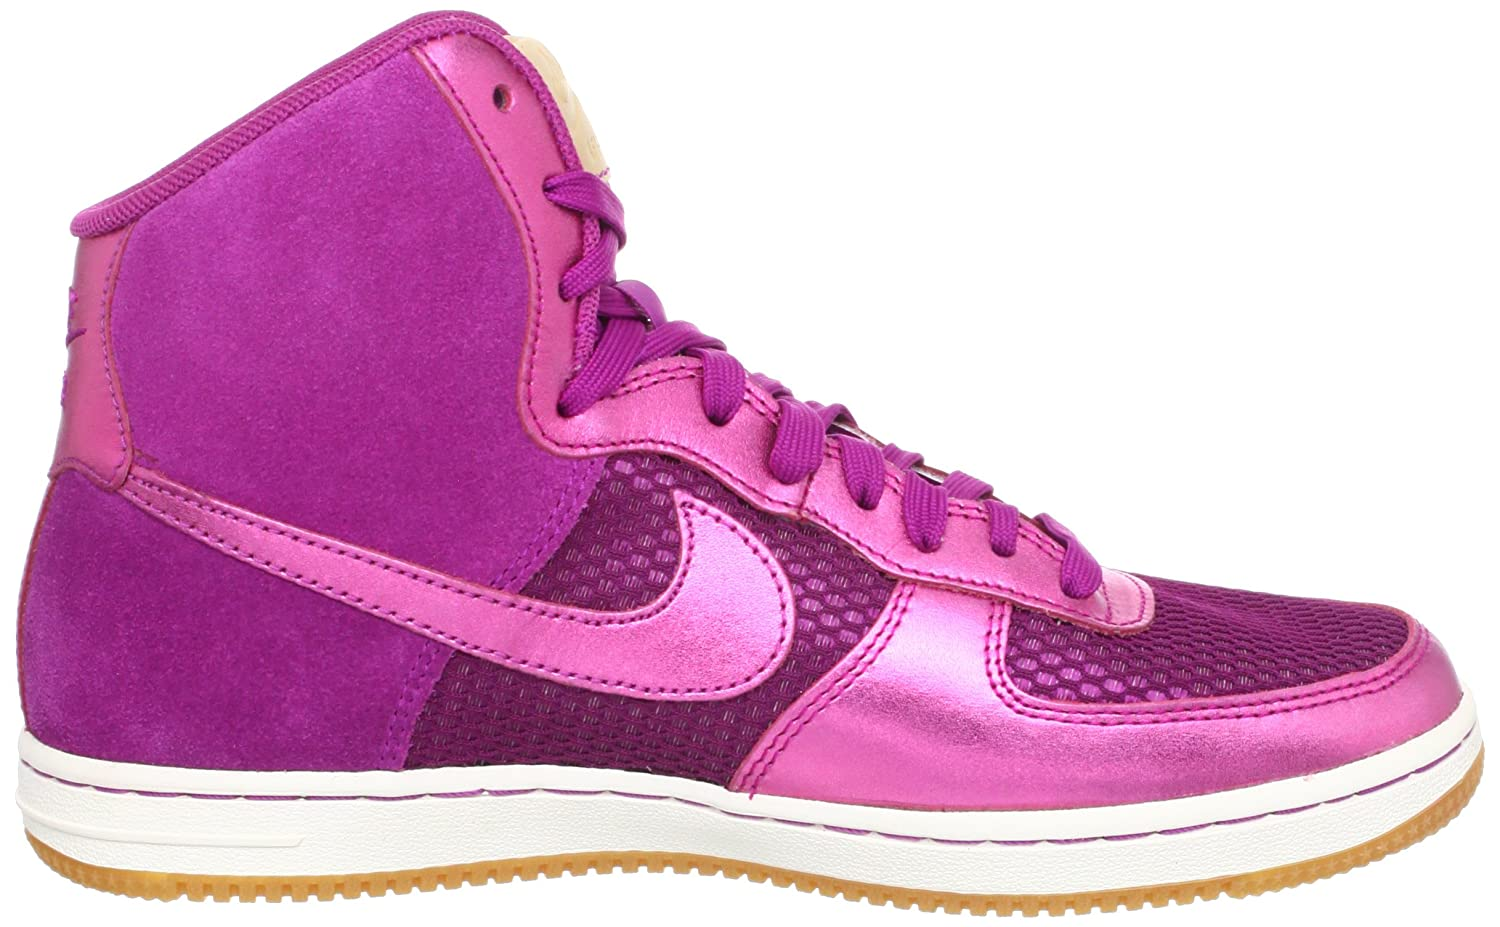 Nike Air Force 1 Light High Donna Viola Scarpe Ginnastica EU